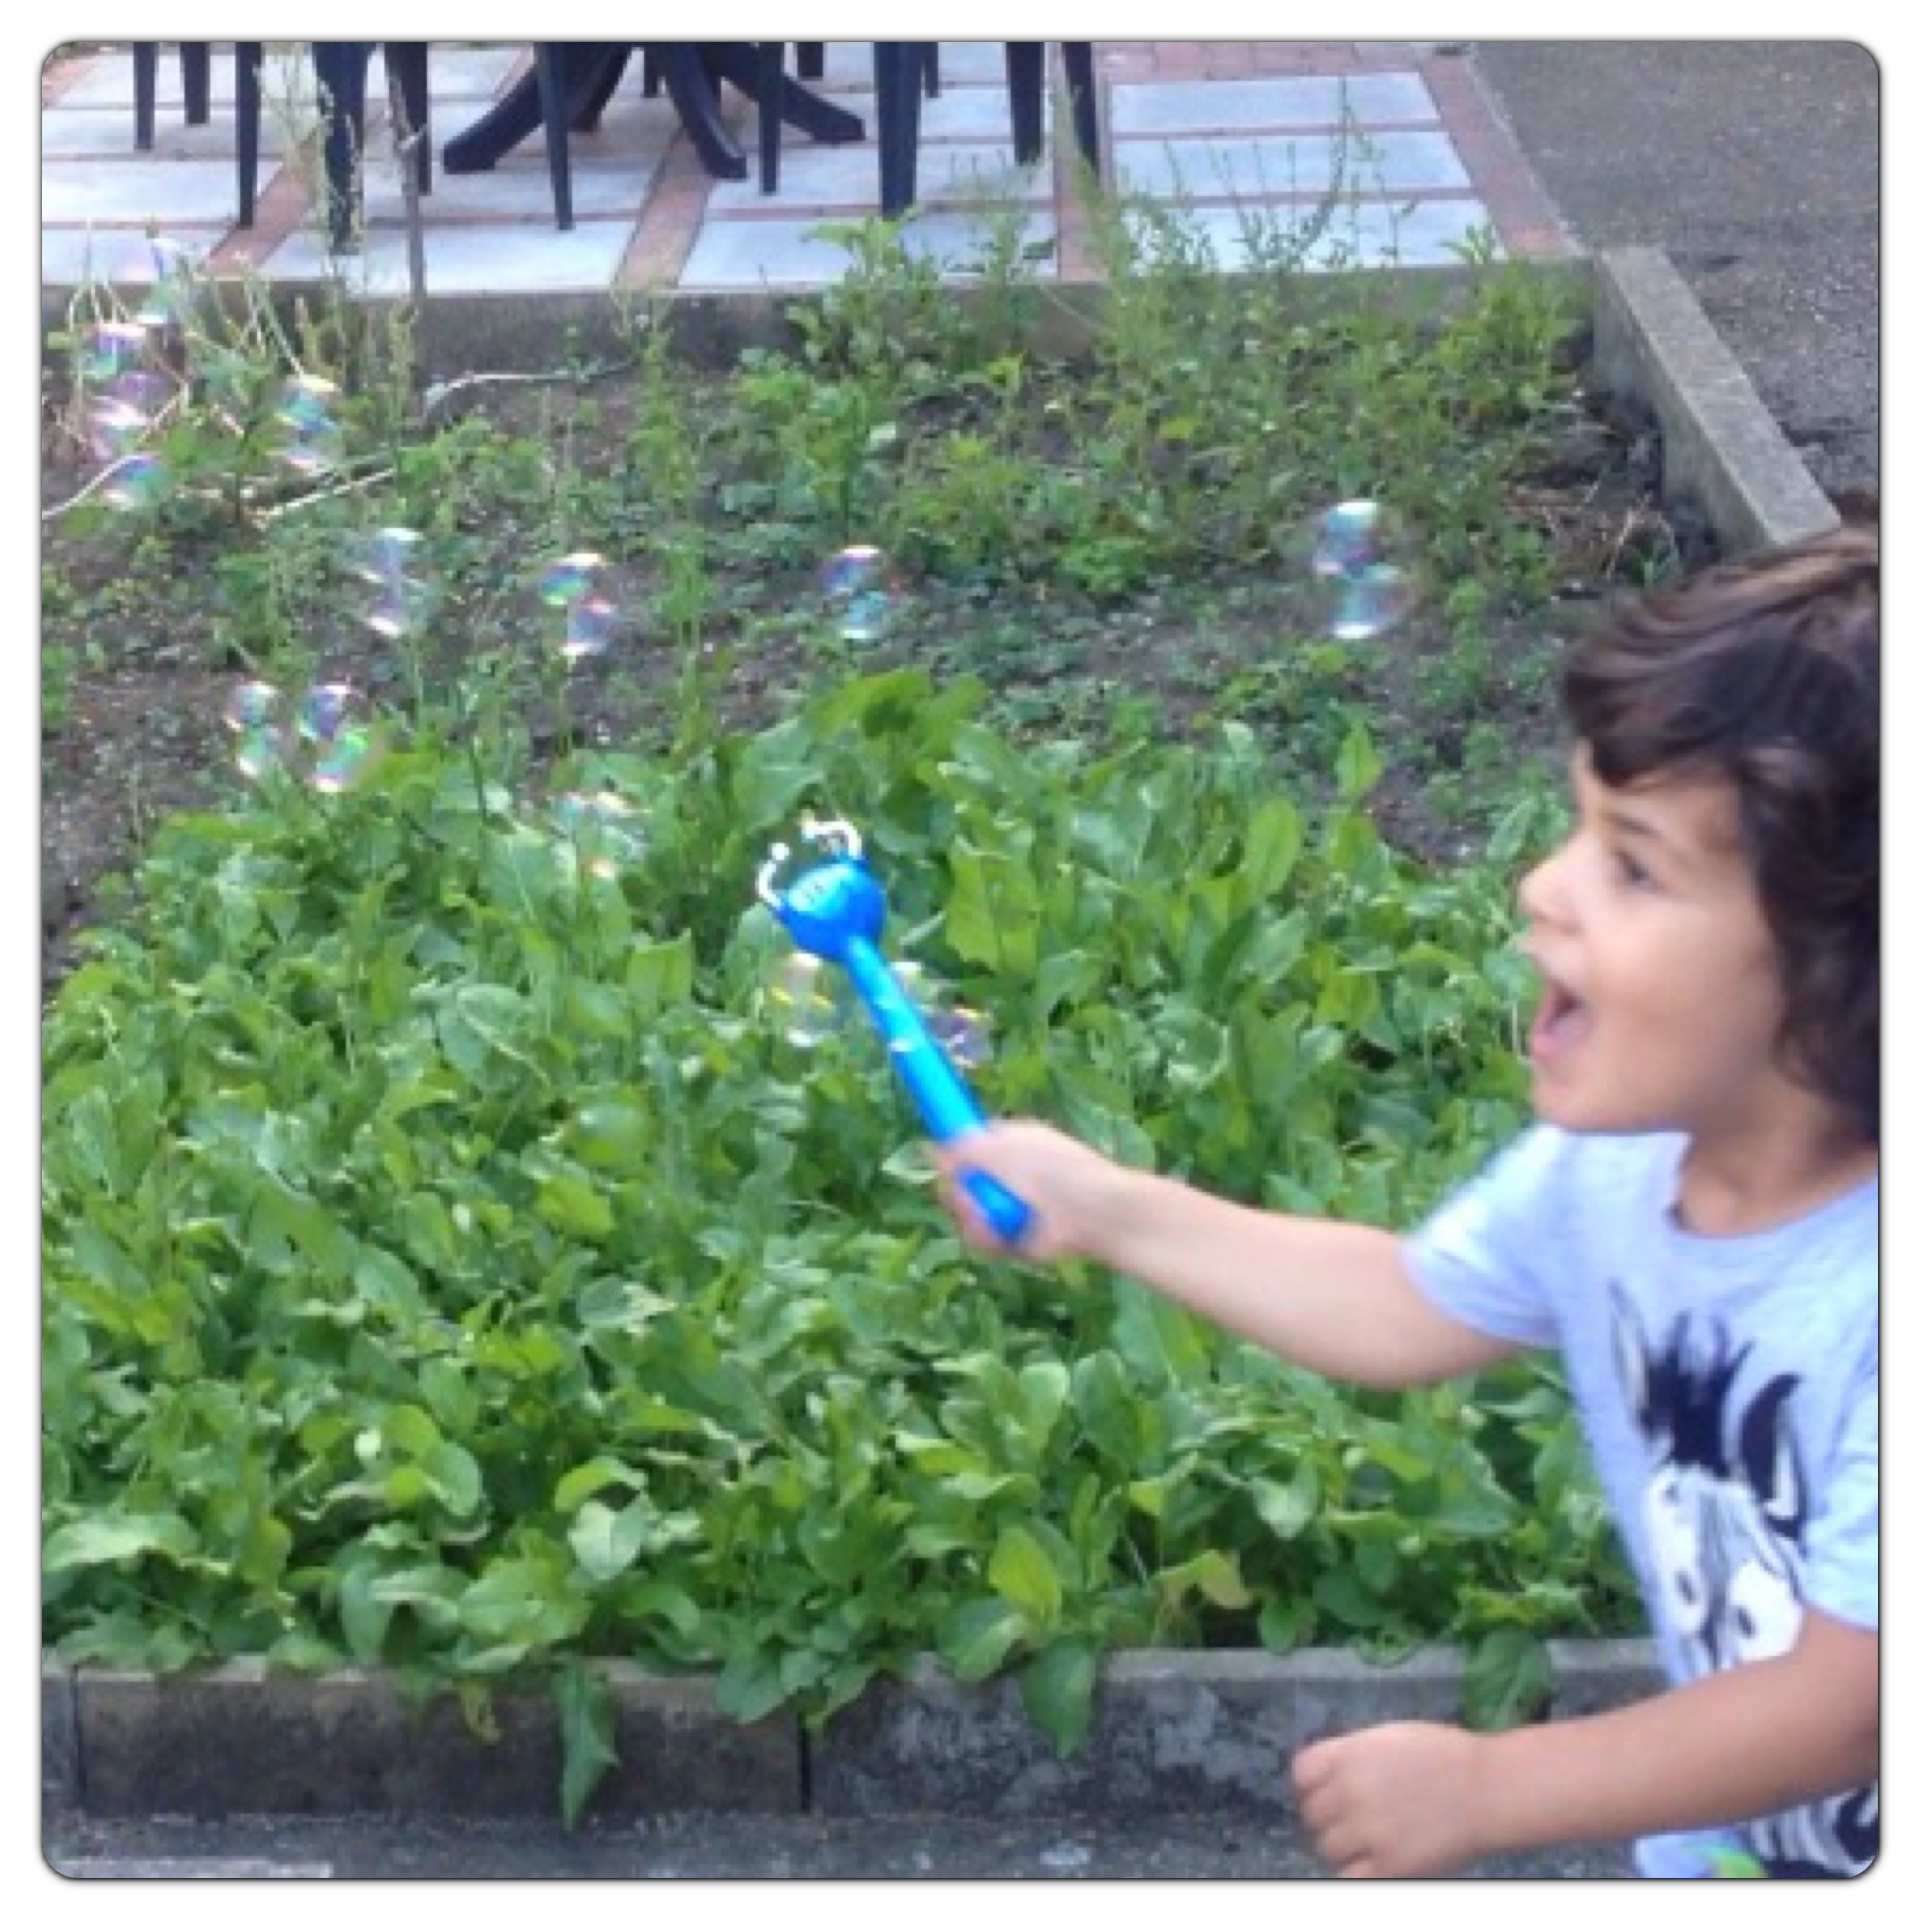 Catching Bubbles with Magic Wand